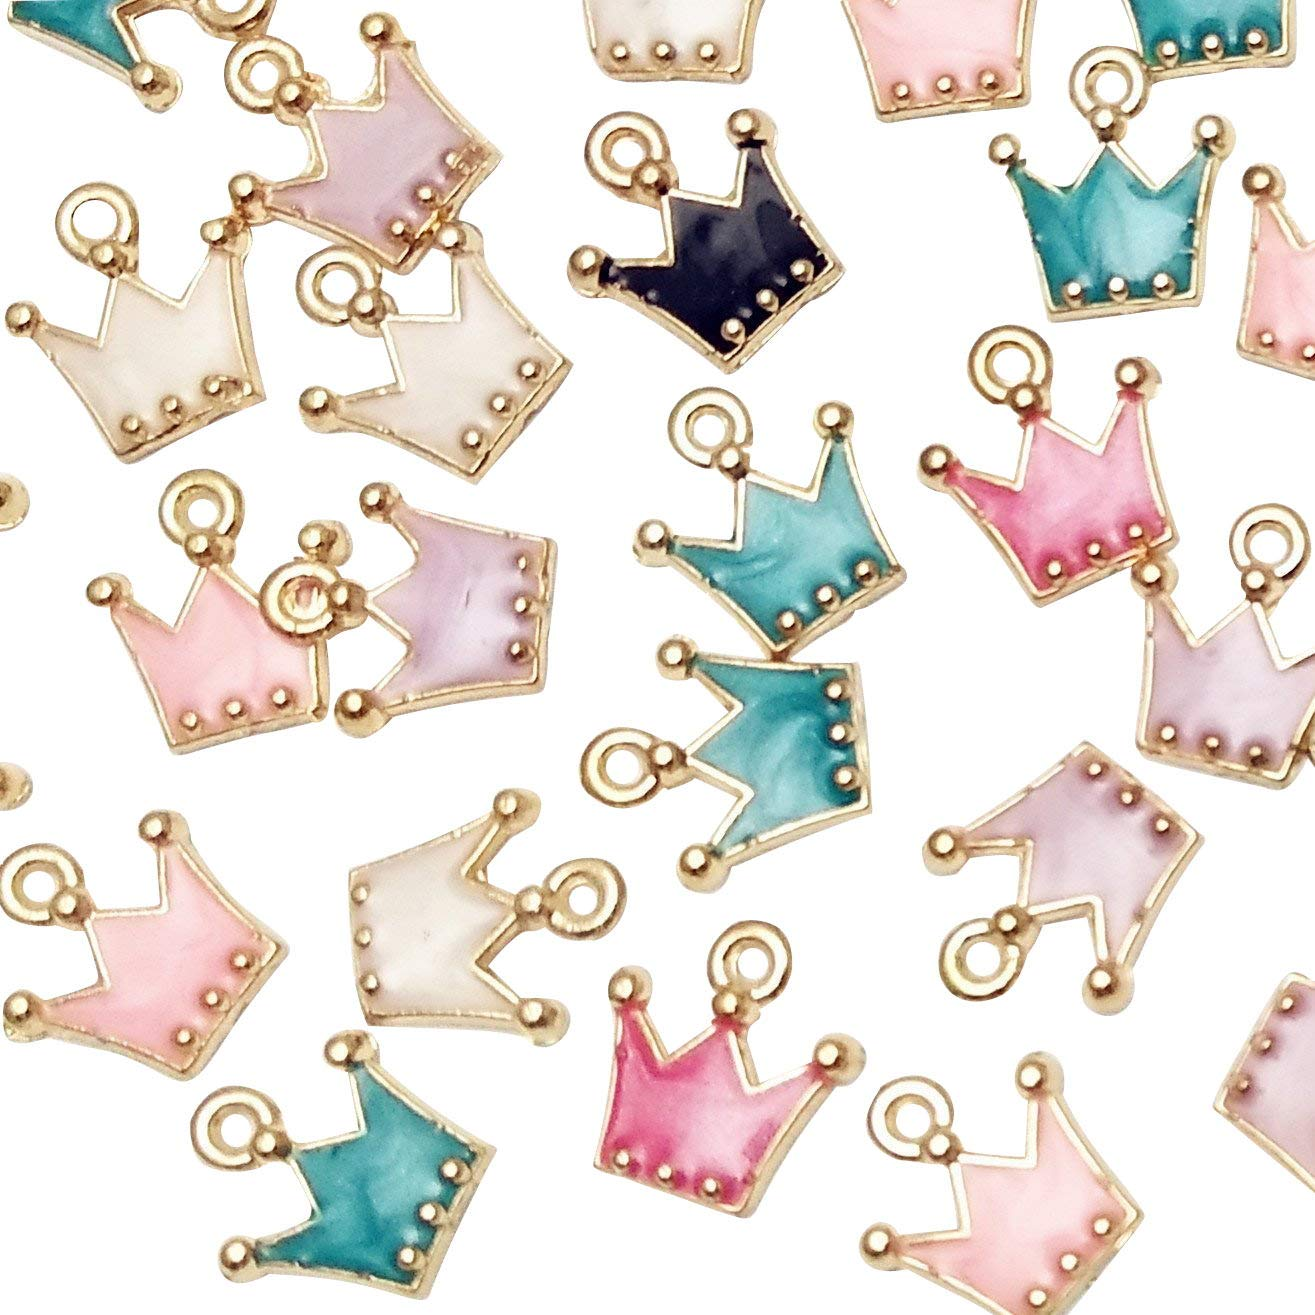 Dandan DIY 38pcs Christmas Pendant Charm for Necklace Bracelet Jewelry Making Clothes Sewing Bags Decoration Charm Diy Scrapbooking Supply (Christmas Styles 2)